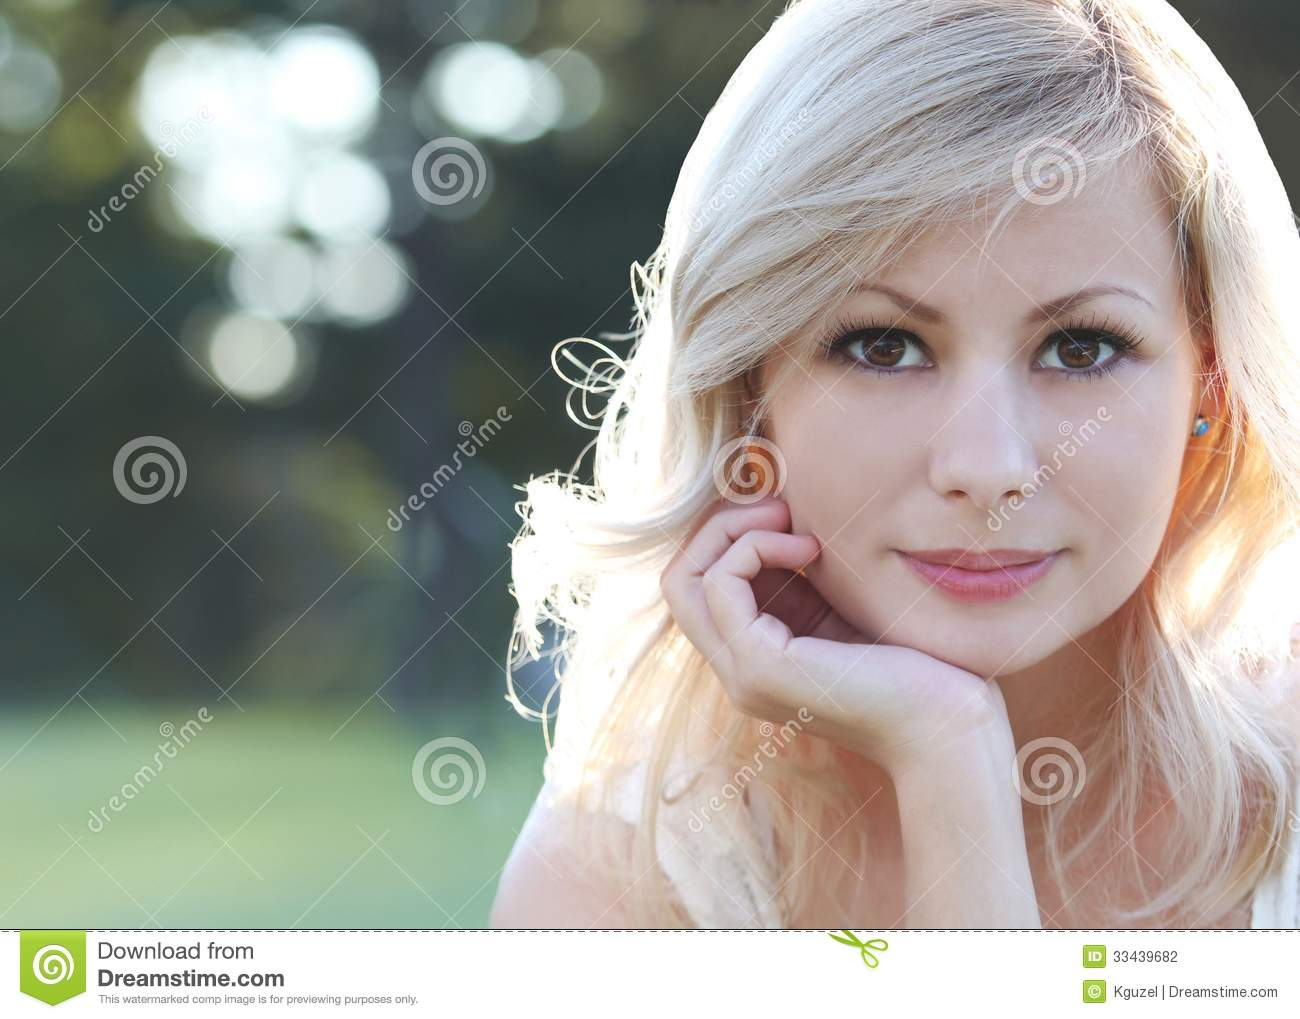 smiling-blonde-girl-portrait-happy-beautiful-young-woman-outdoors-bokeh-copy-space-33439682.jpg